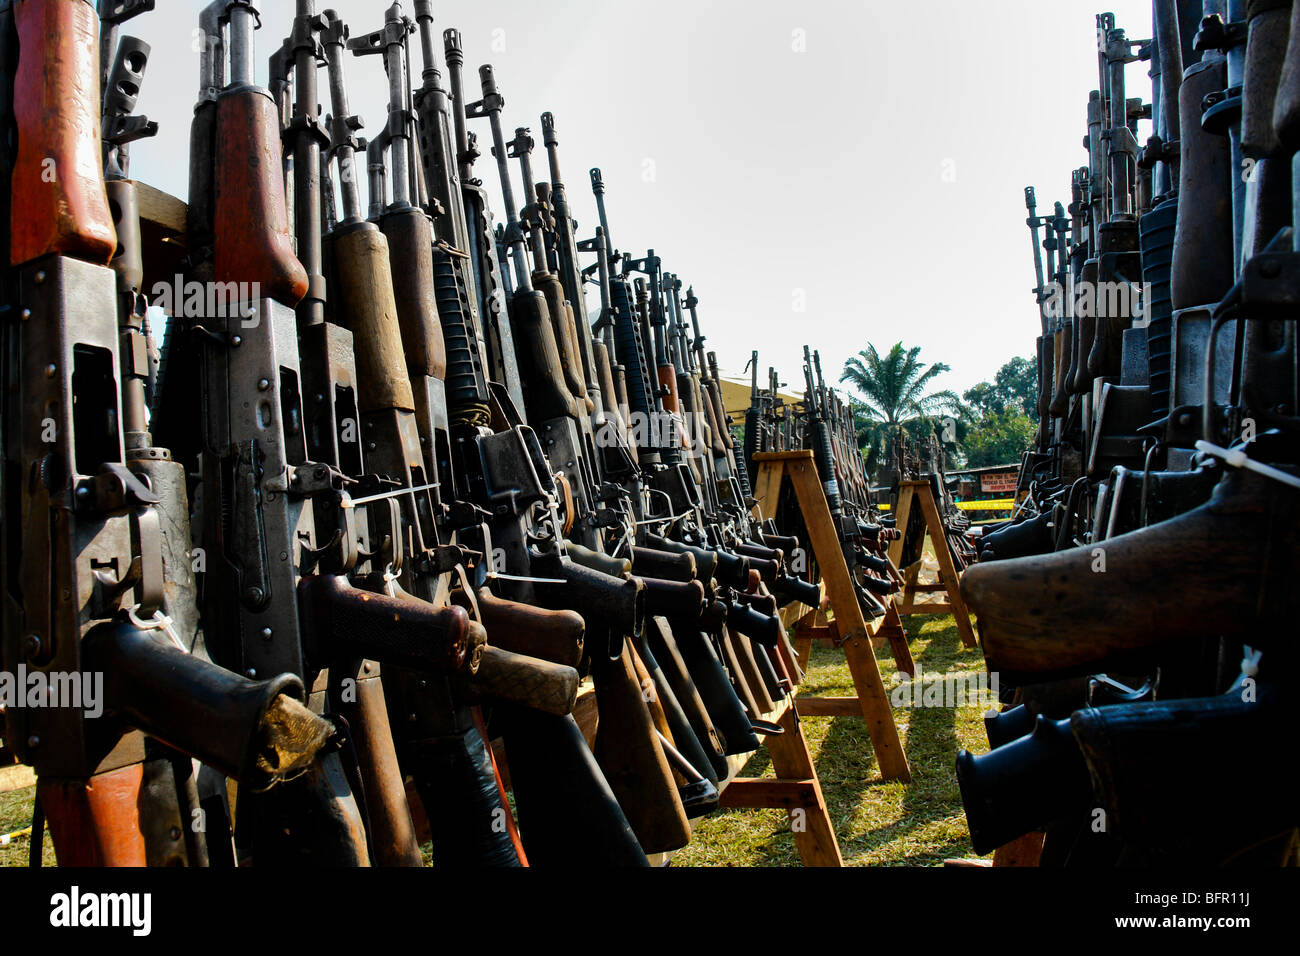 Machine guns that belonged to the demobilized Colombian paramilitary forces (AUC) in Casibare, Meta, Colombia. Stock Photo